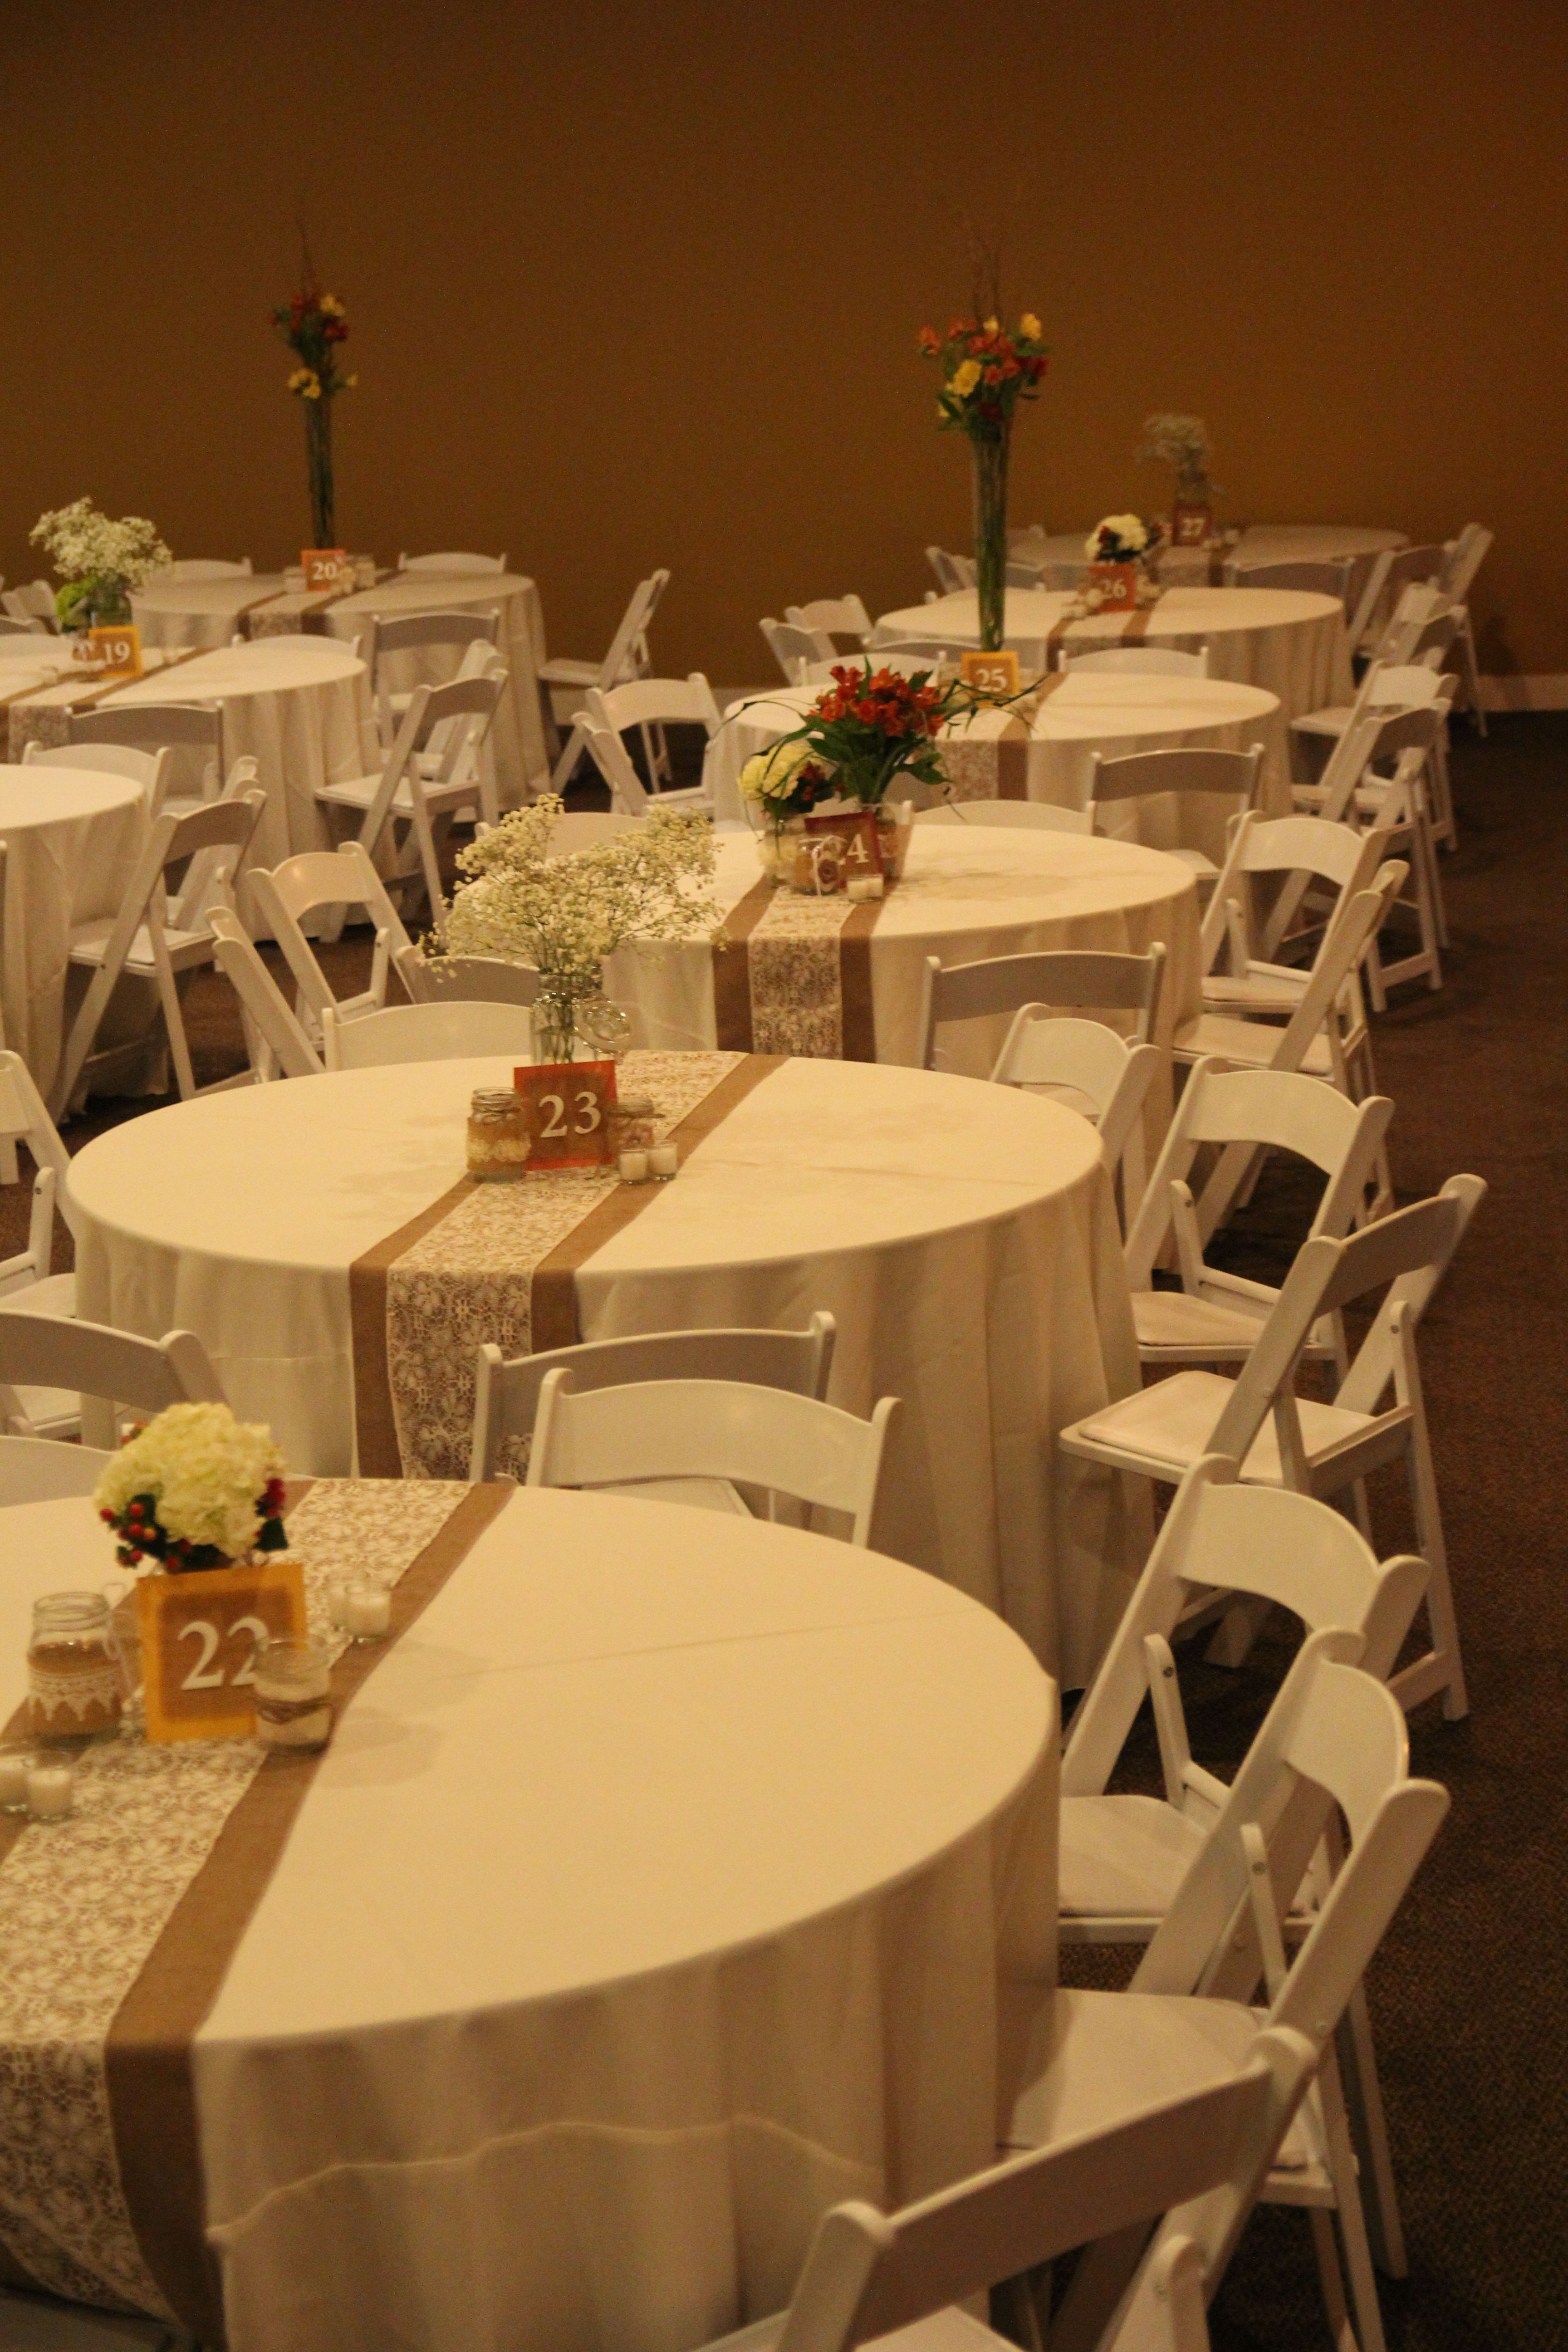 Burlap And Lace Table Runner Simple Decoration For A Great Rustic Chic Wedding Reception Decorations